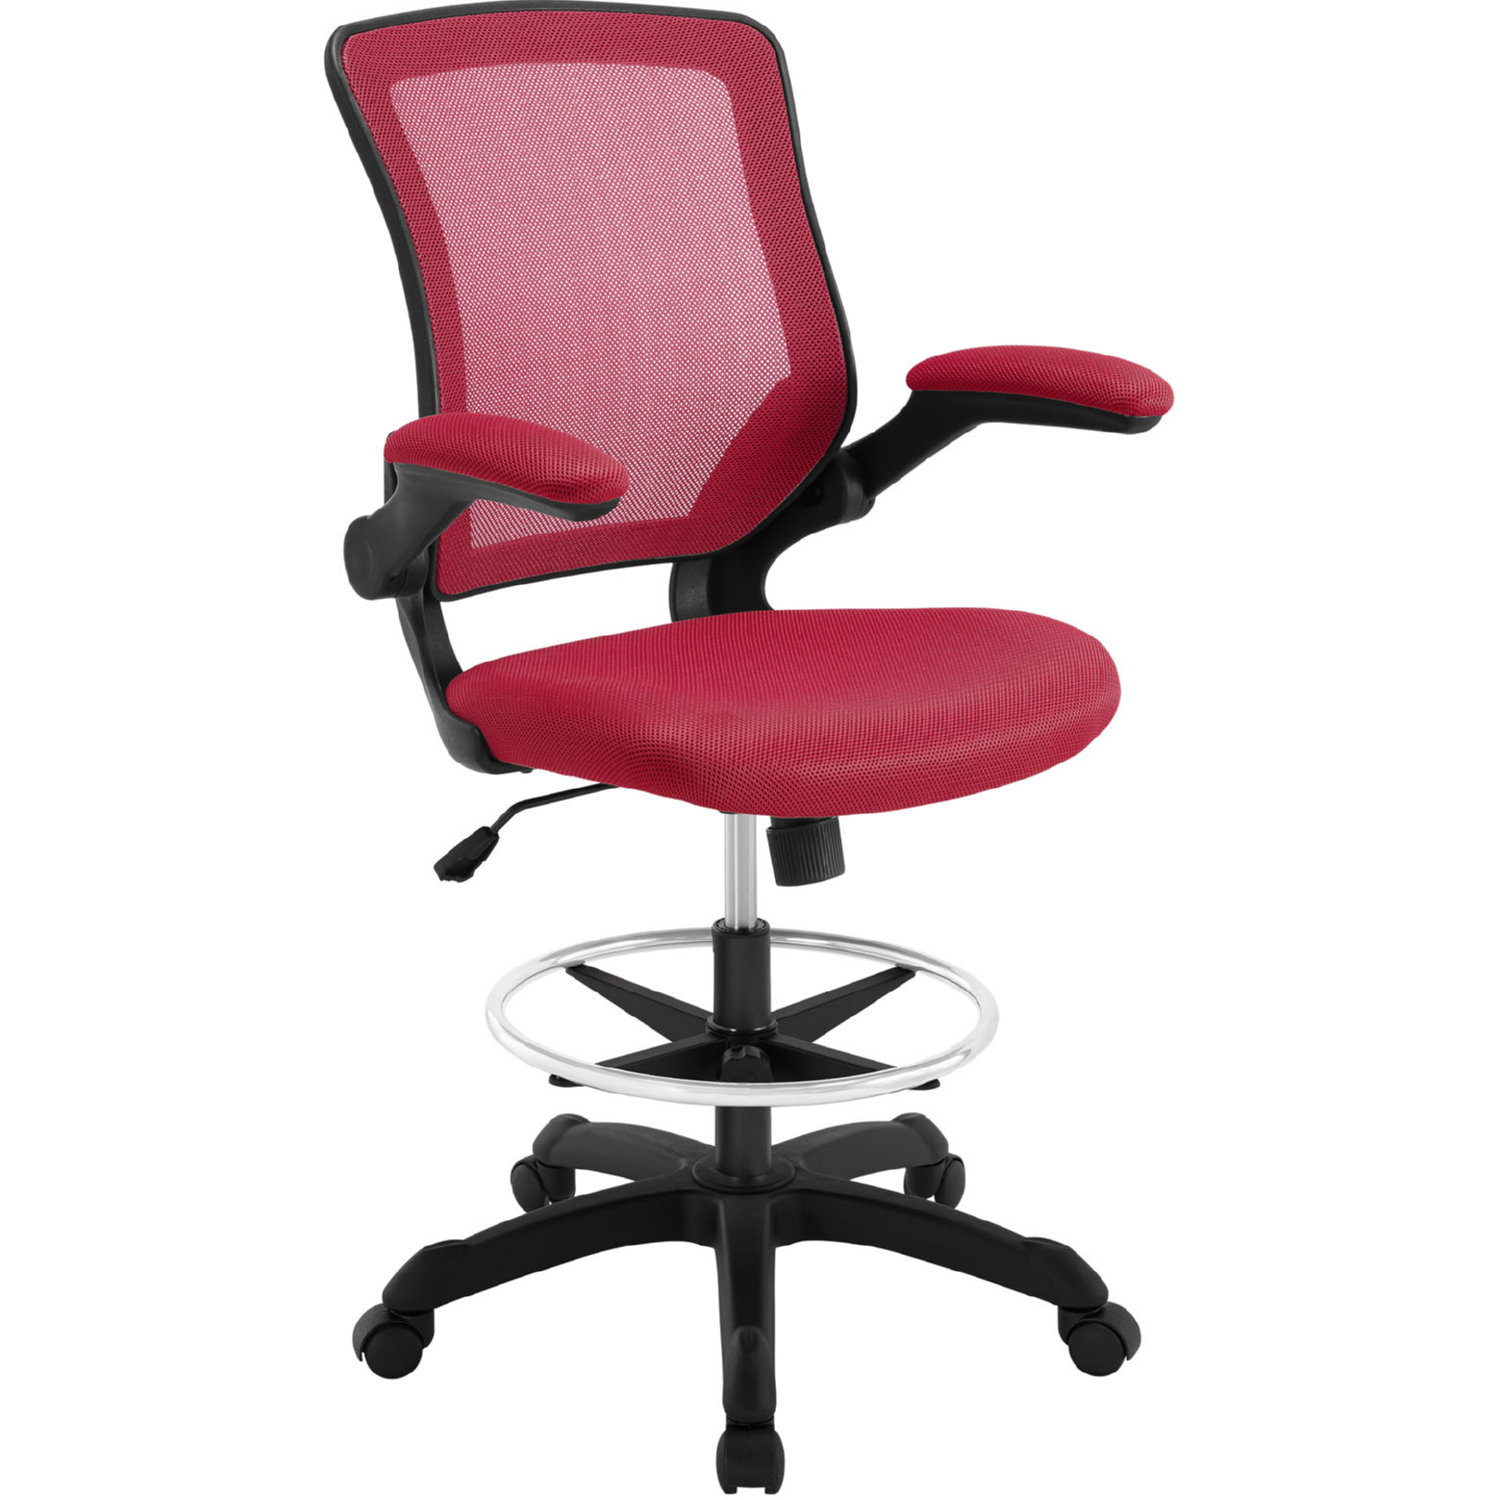 Modway Eei 1423 Red Veer Drafting Stool In Red Leatherette